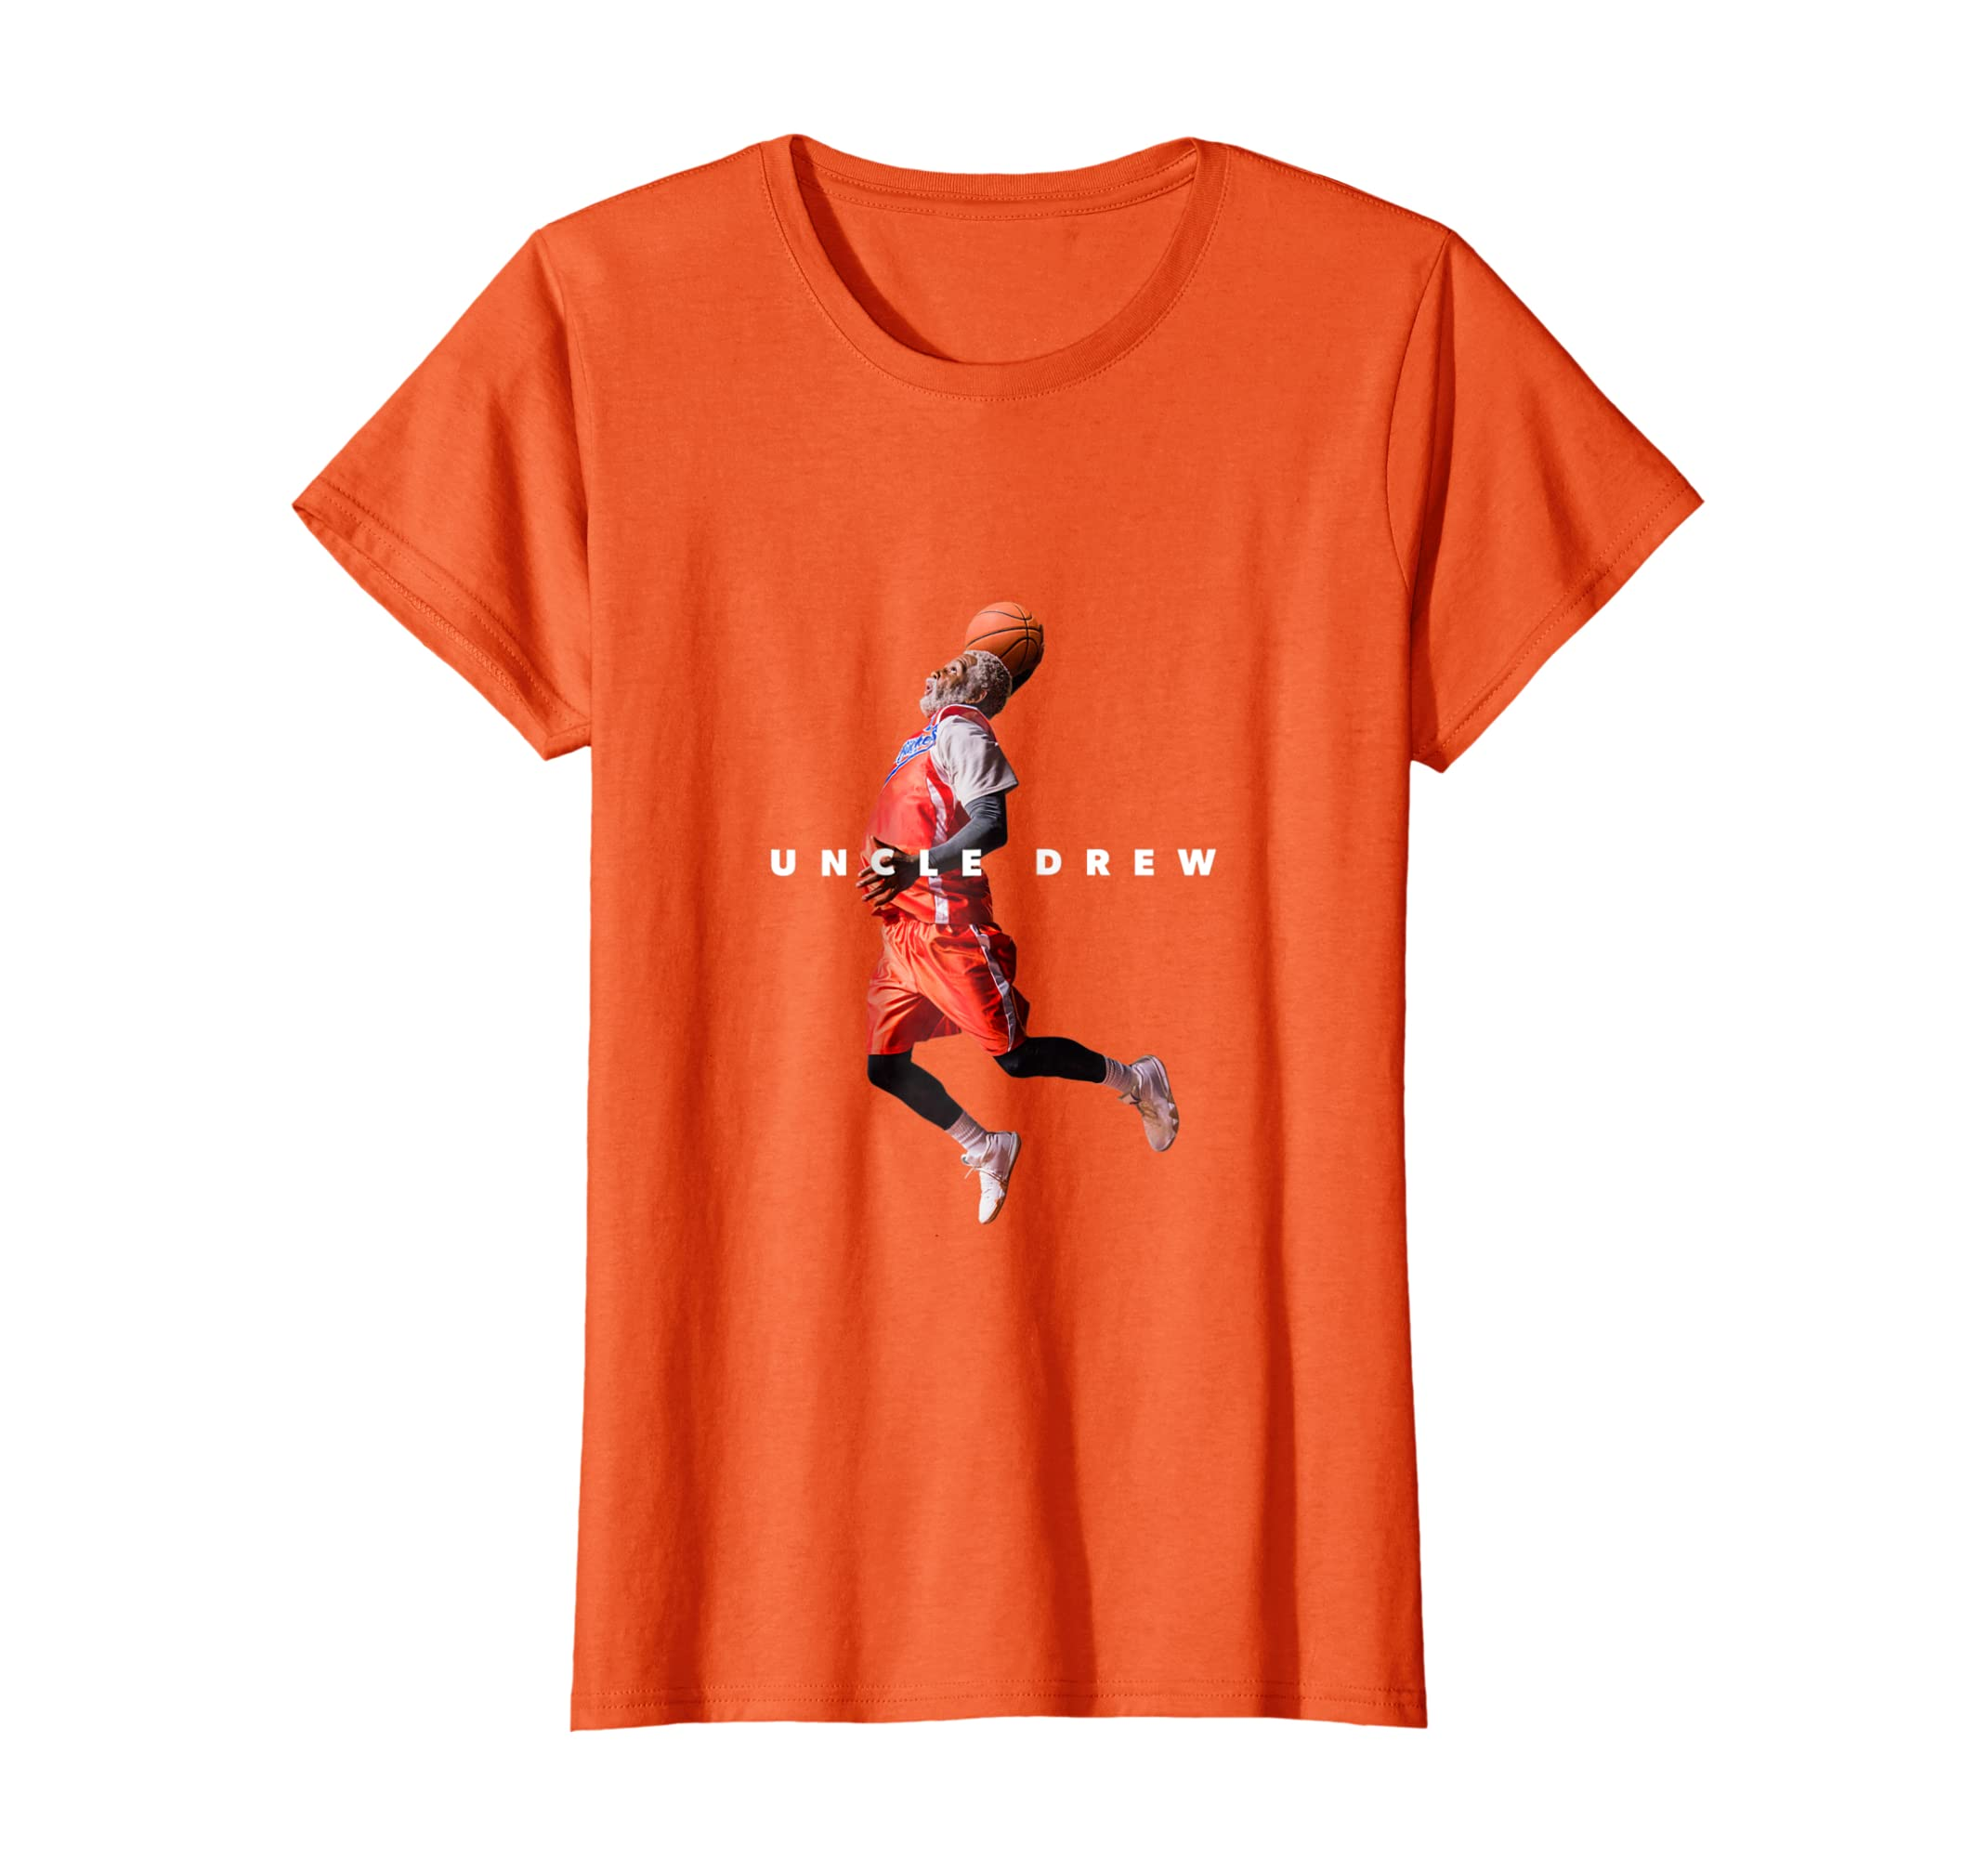 brand new 17202 03498 Uncle Drew: Dunk T-Shirt